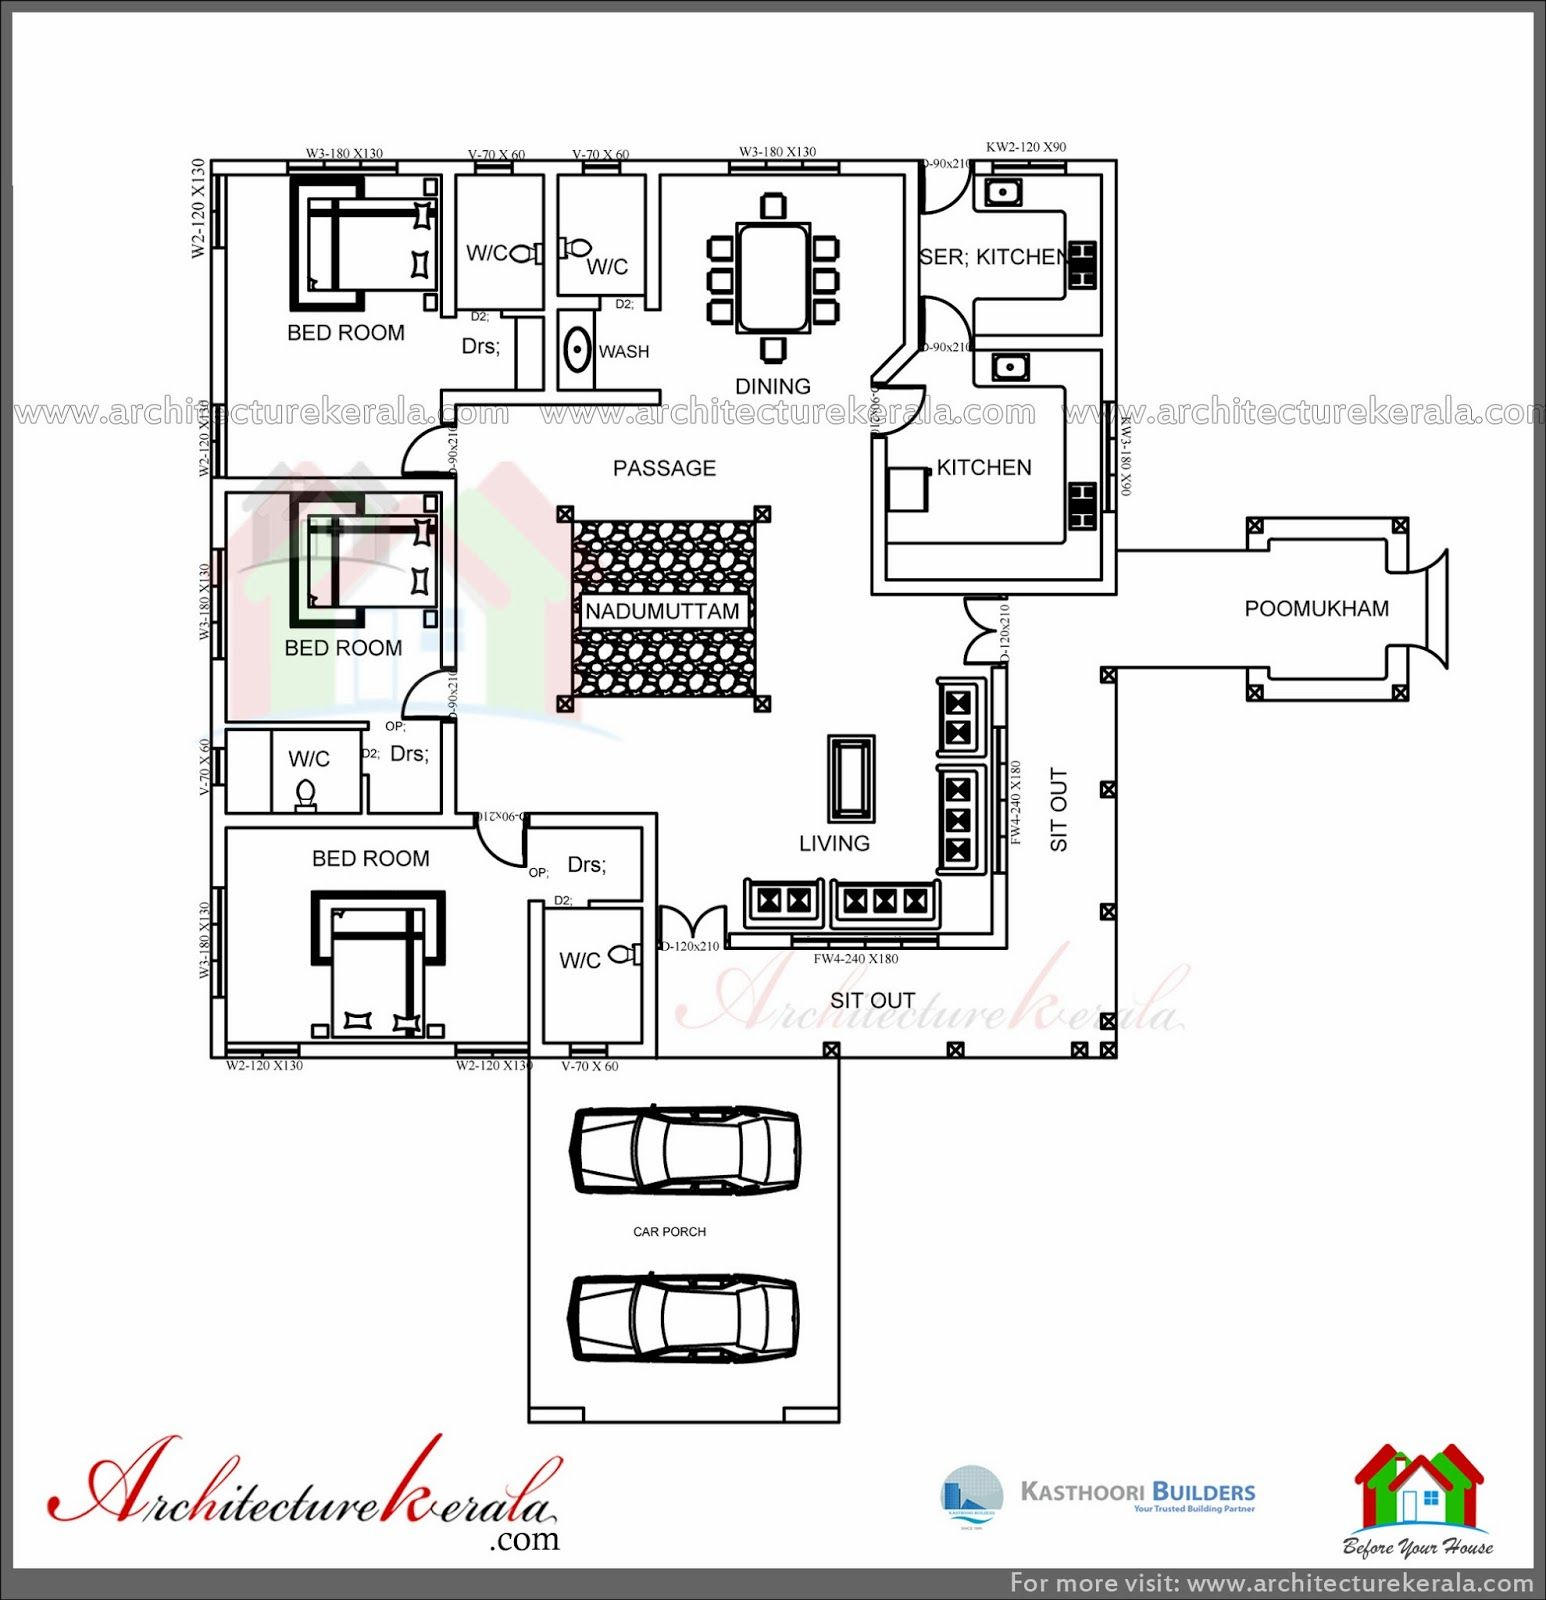 Architecture kerala traditional house plan with for Kerala homes plan